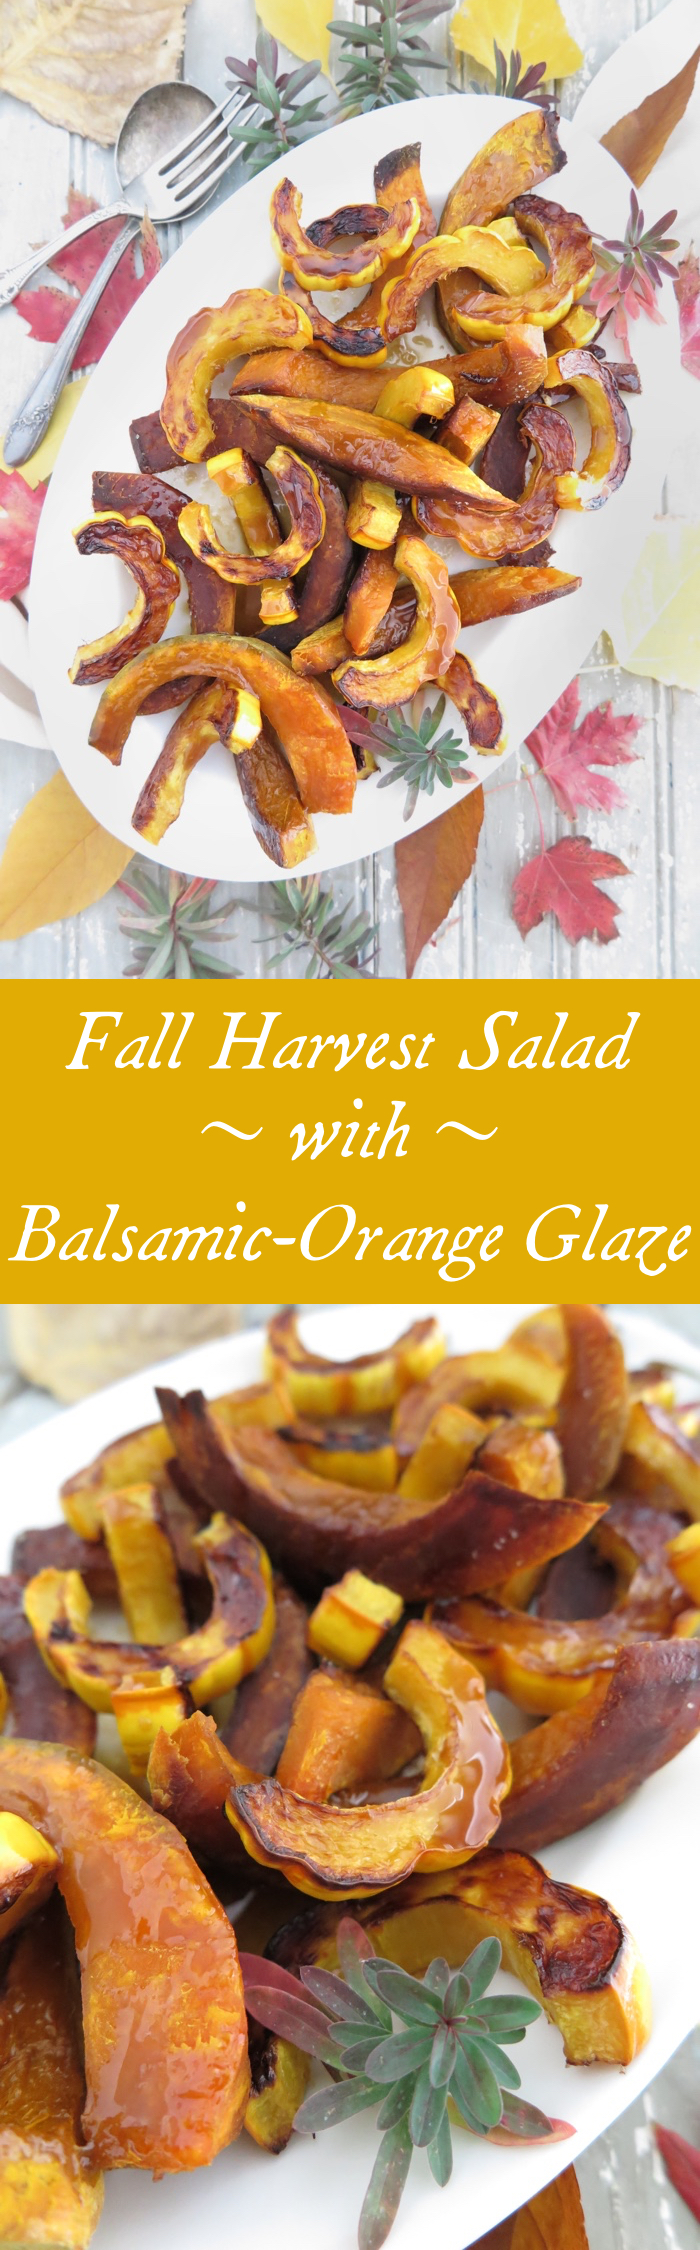 Fall Harvest Salad with Balsamic-Orange Glaze [Paleo - AIP] This side dish is so beautiful and so easy to make! With delicata squash and kabocha squash, this is the perfect complement to your Thanksgiving turkey!